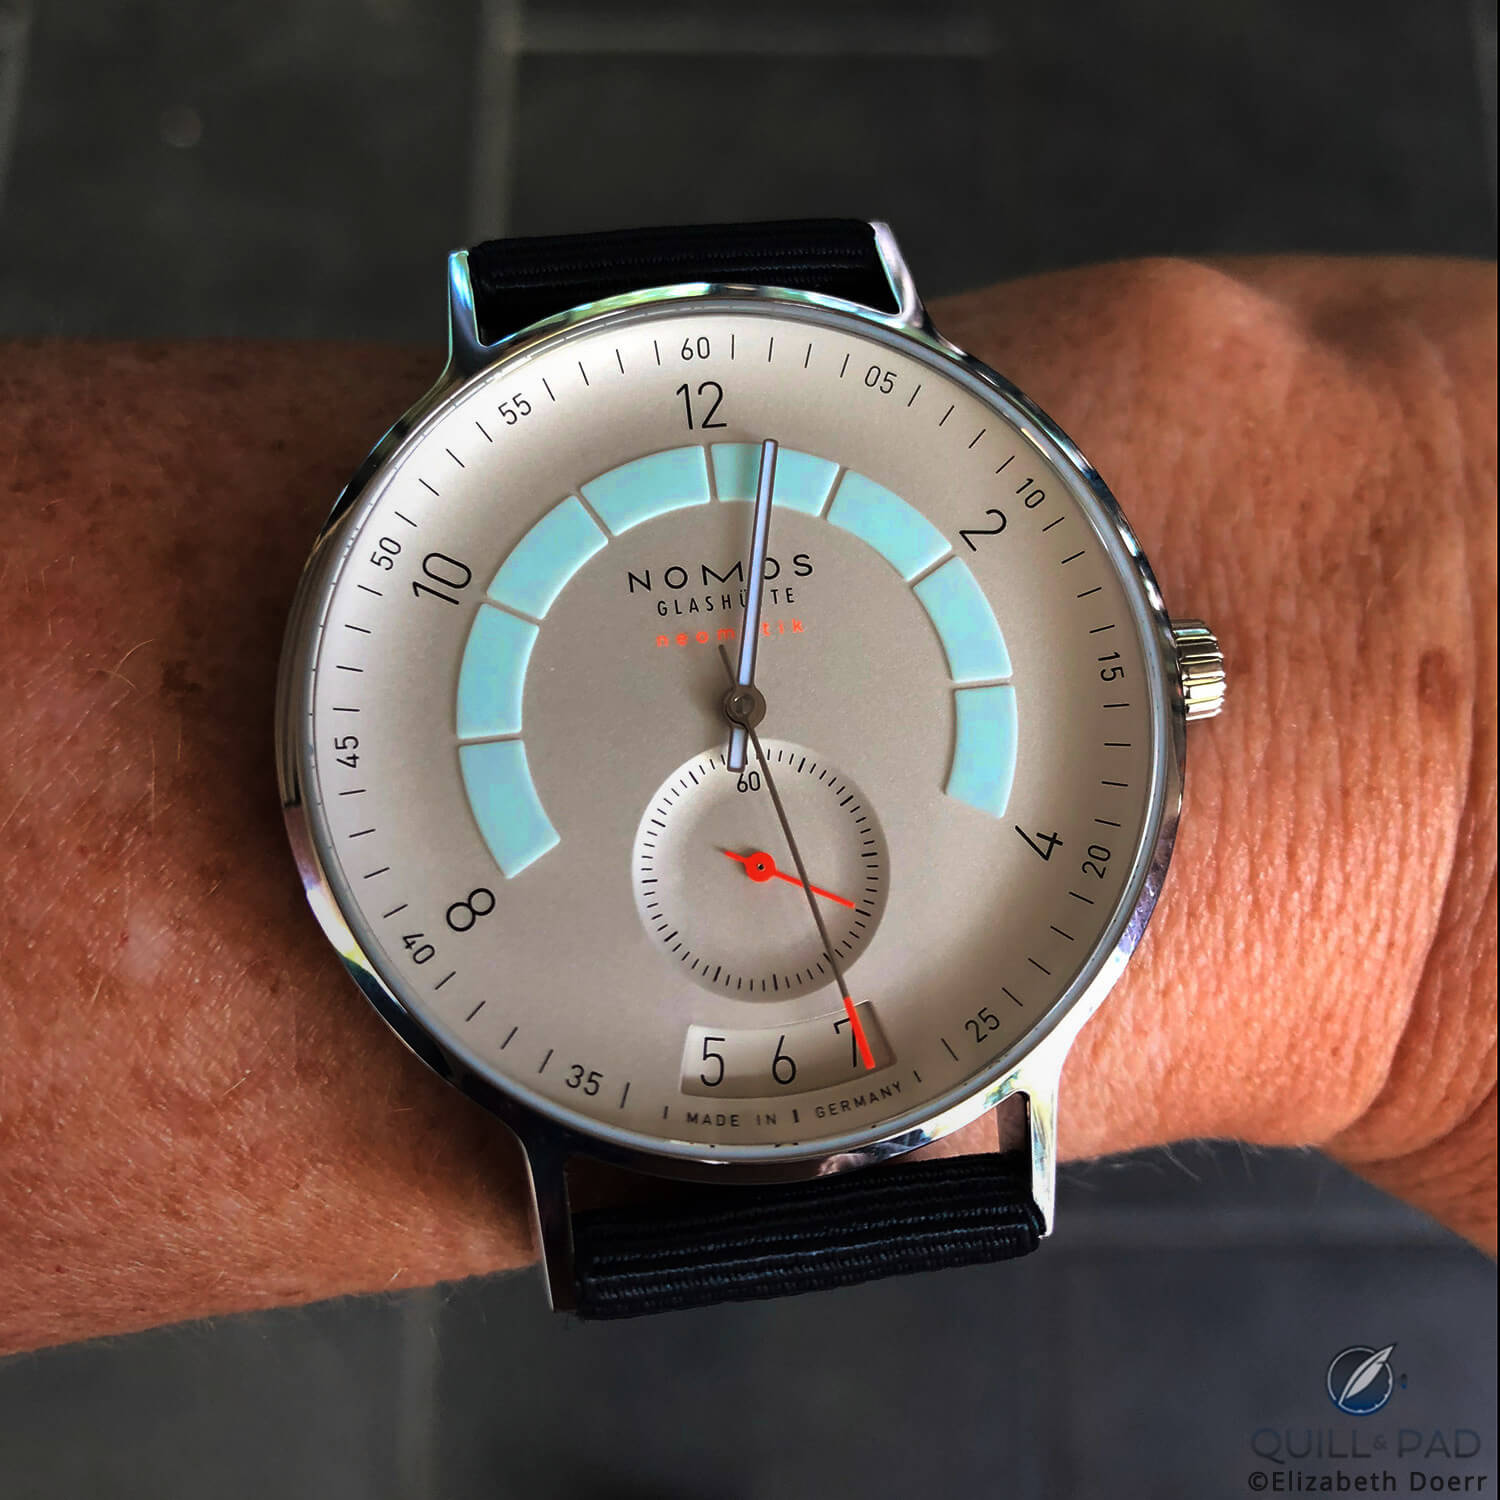 The lights only start to go down and the lume already starts to come up: Nomos Glashütte Autobahn, what a sleeper